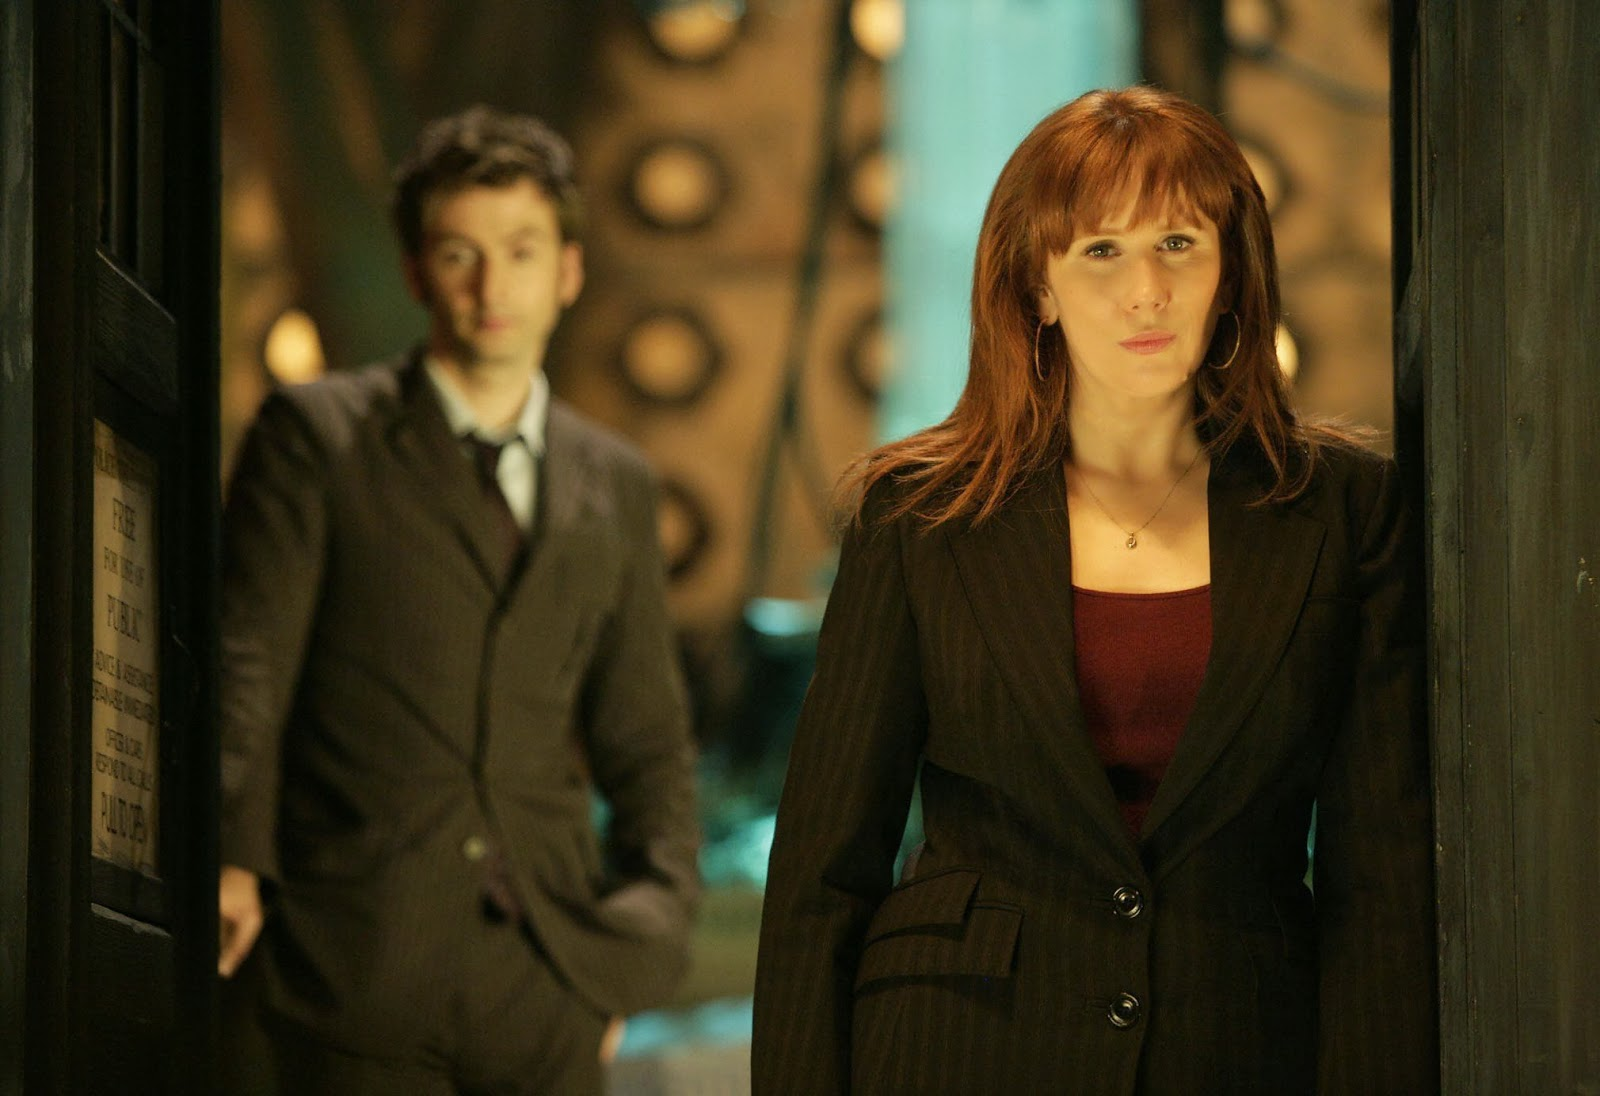 doctor who partners in crime and donna meet again